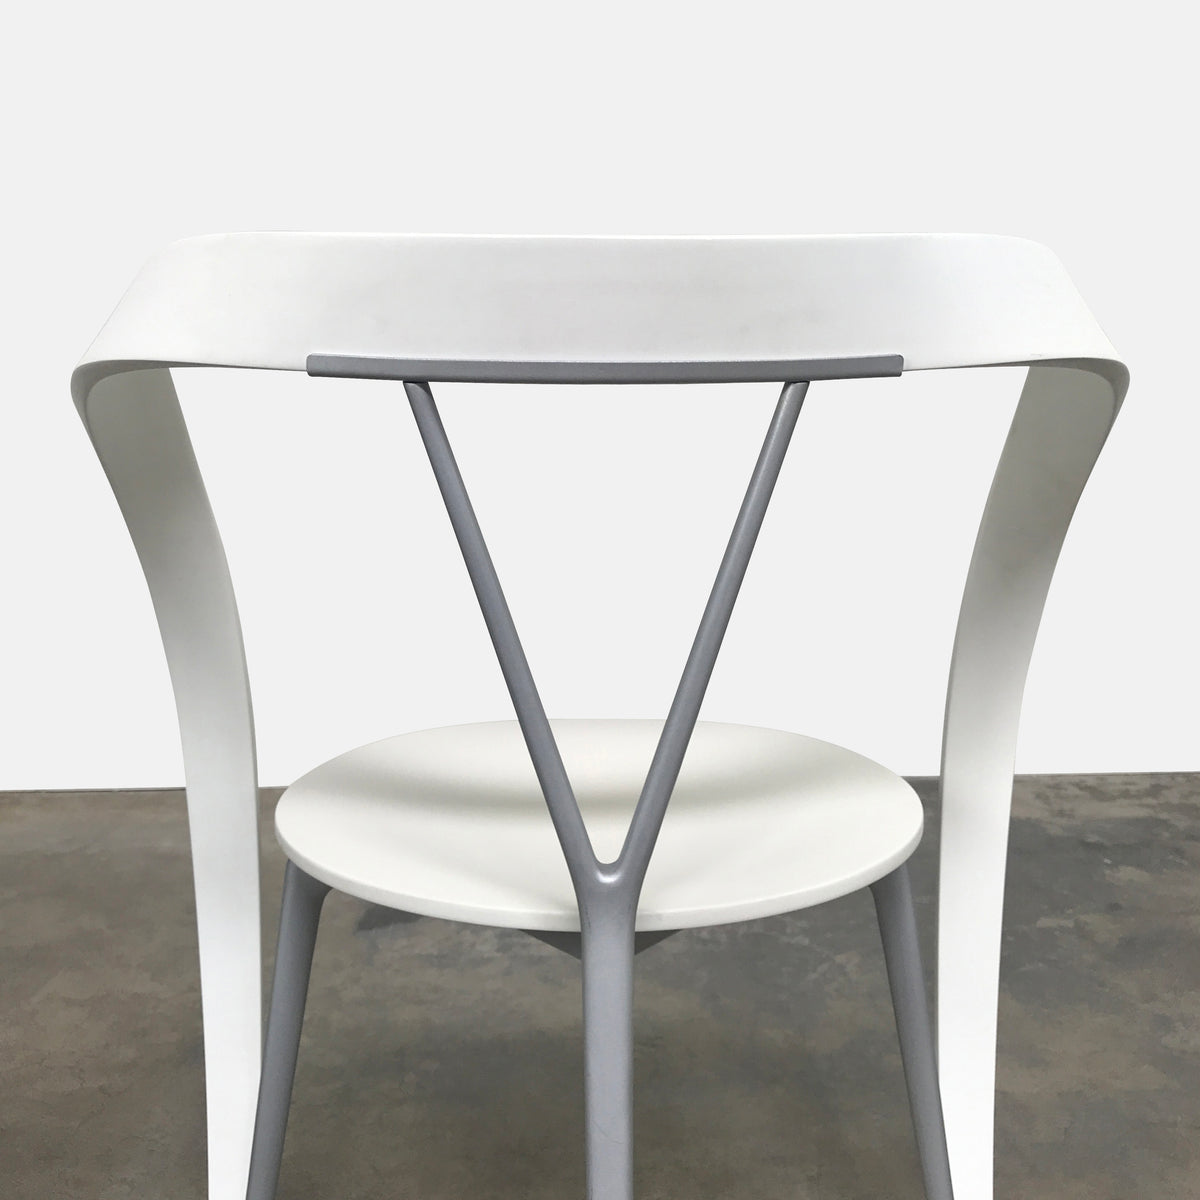 White Revers Chair (2 in stock)